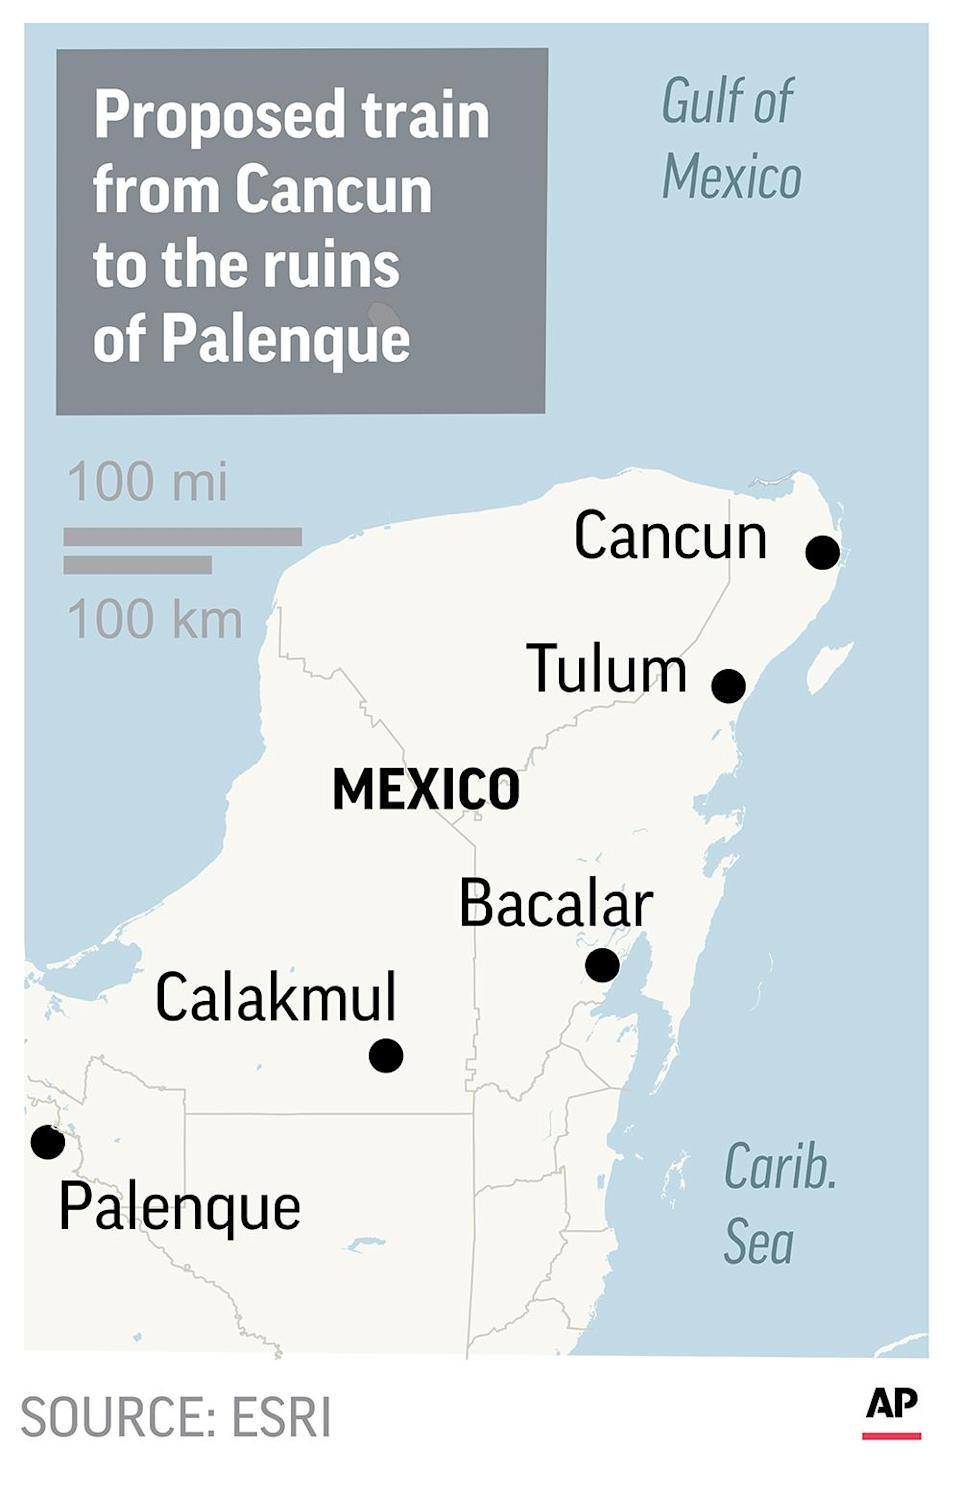 The $3.2 billion train would run from the resort of Cancun to the Mayan ruins of Palenque across the Yucatan peninsula.